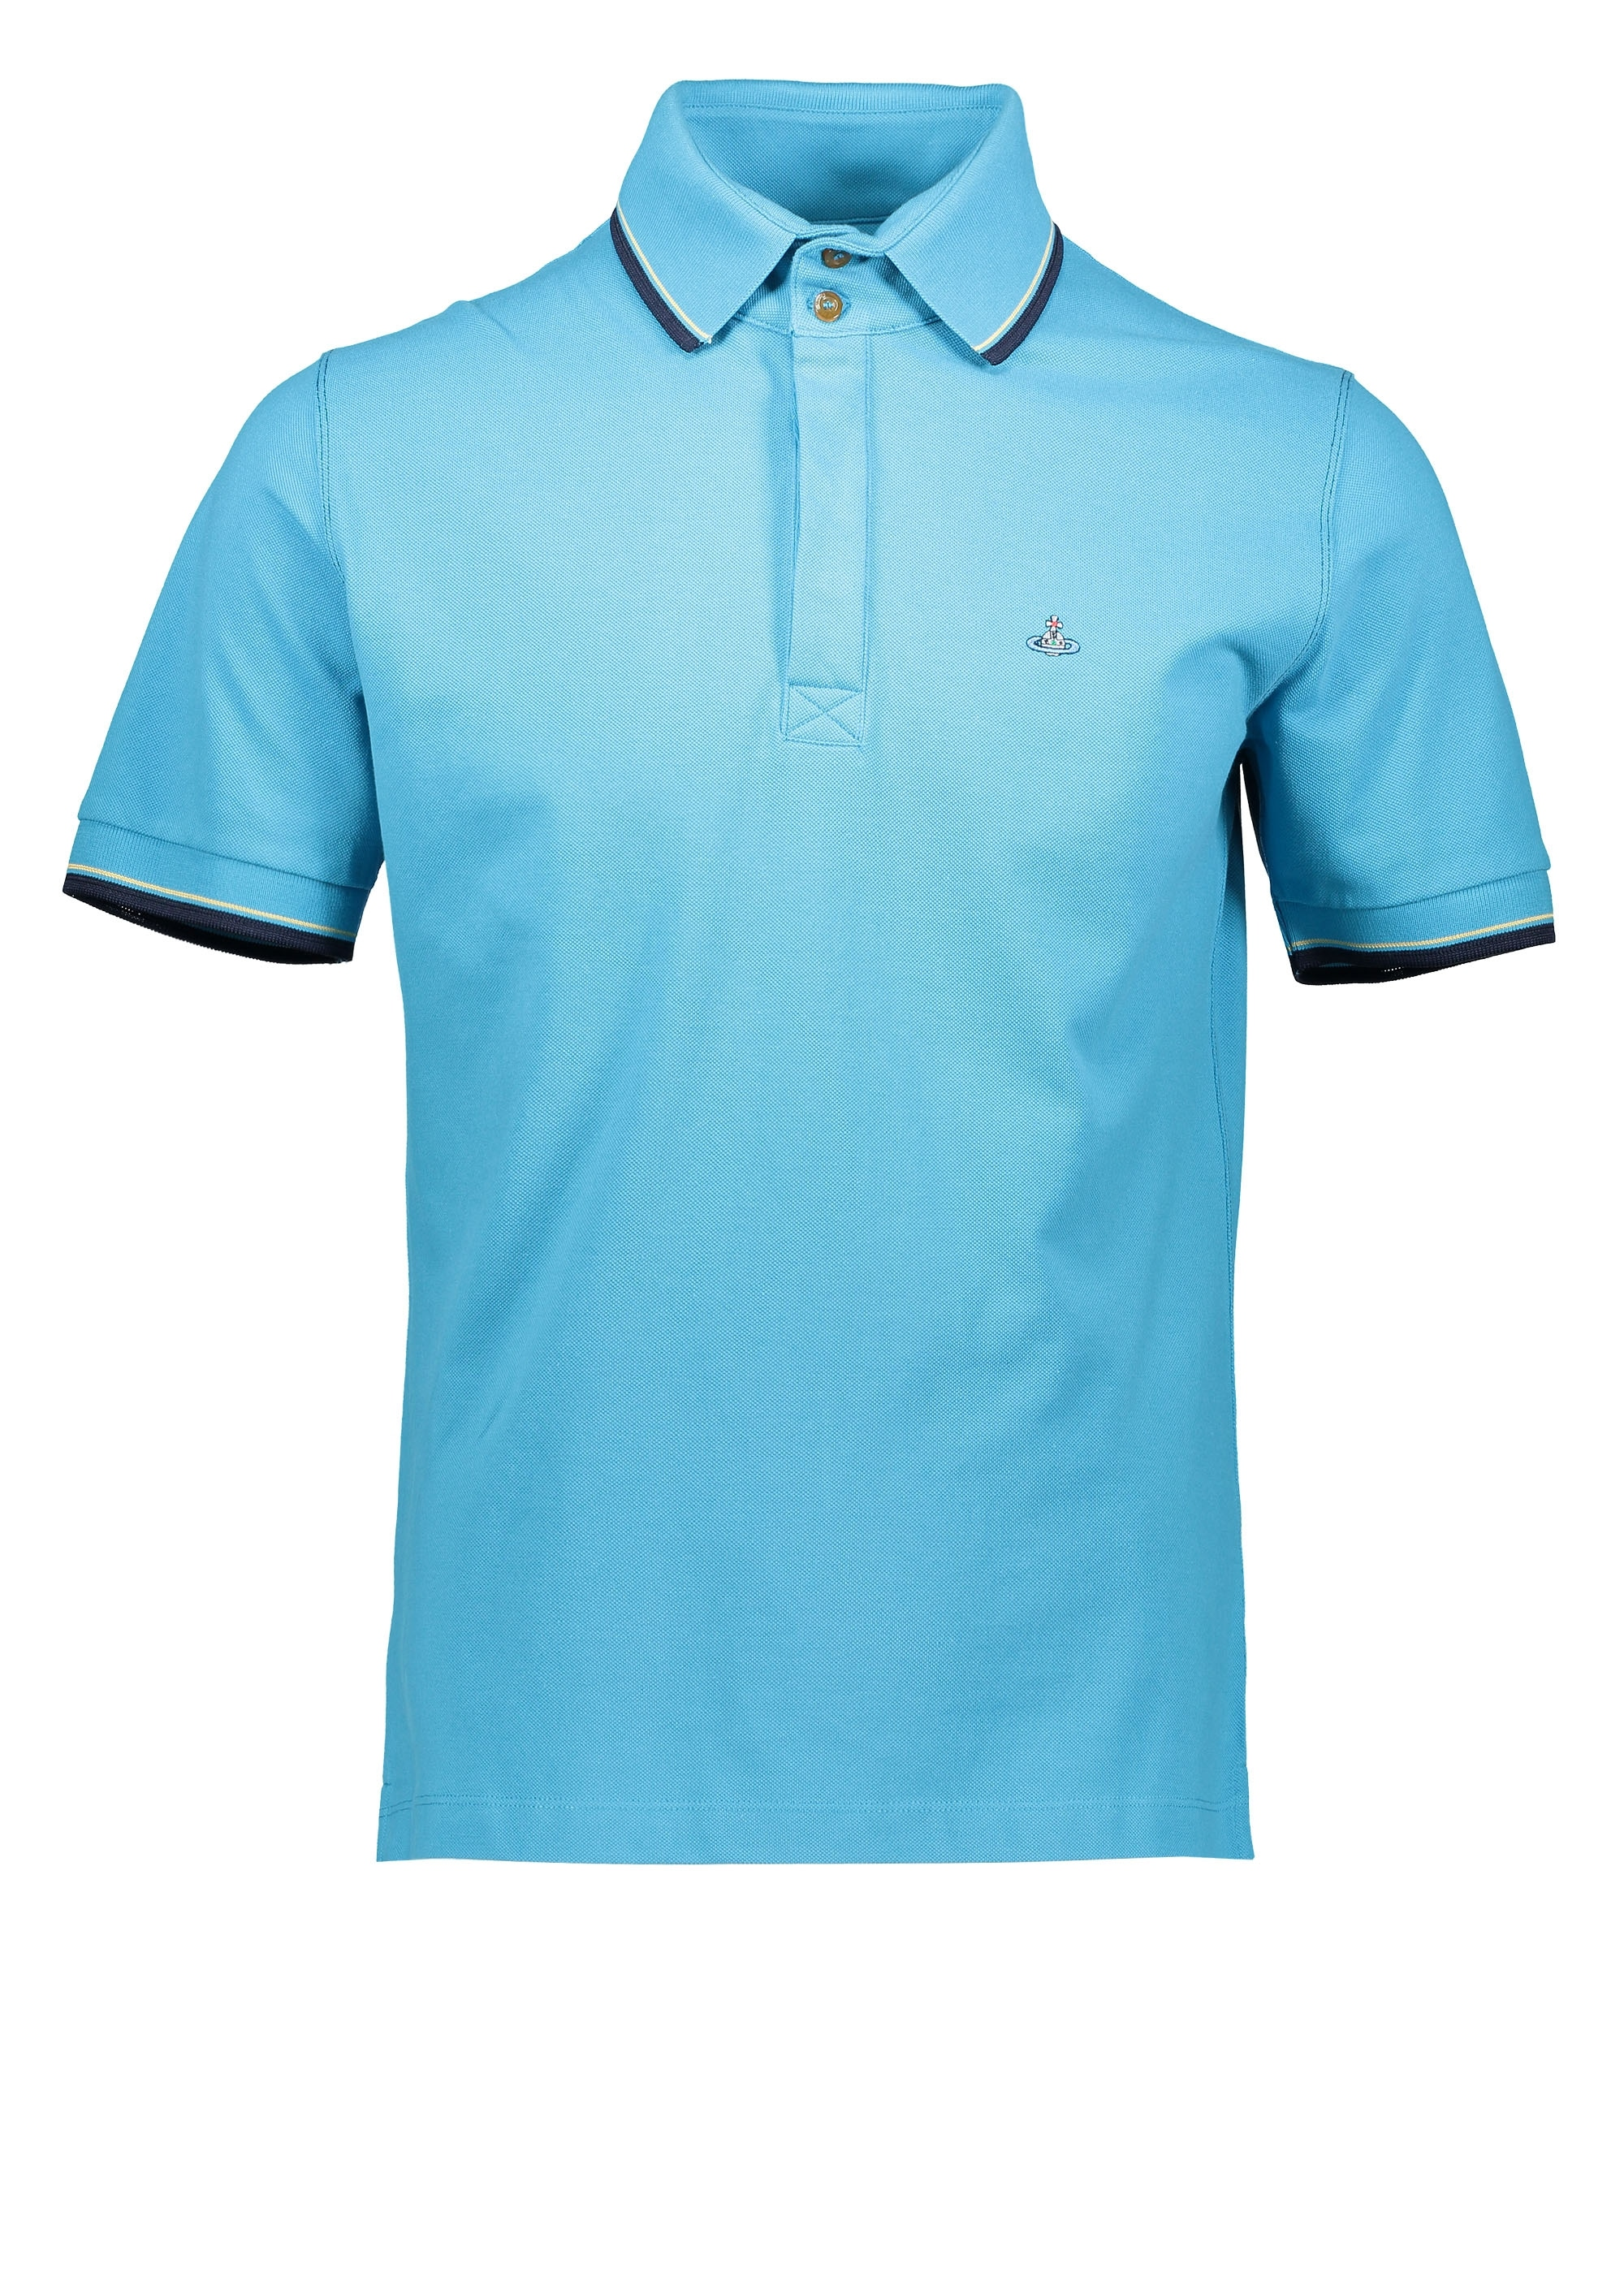 79676a7eeb9c8 Vivienne Westwood Mens Overlock Polo - Turquoise - Triads Mens from ...